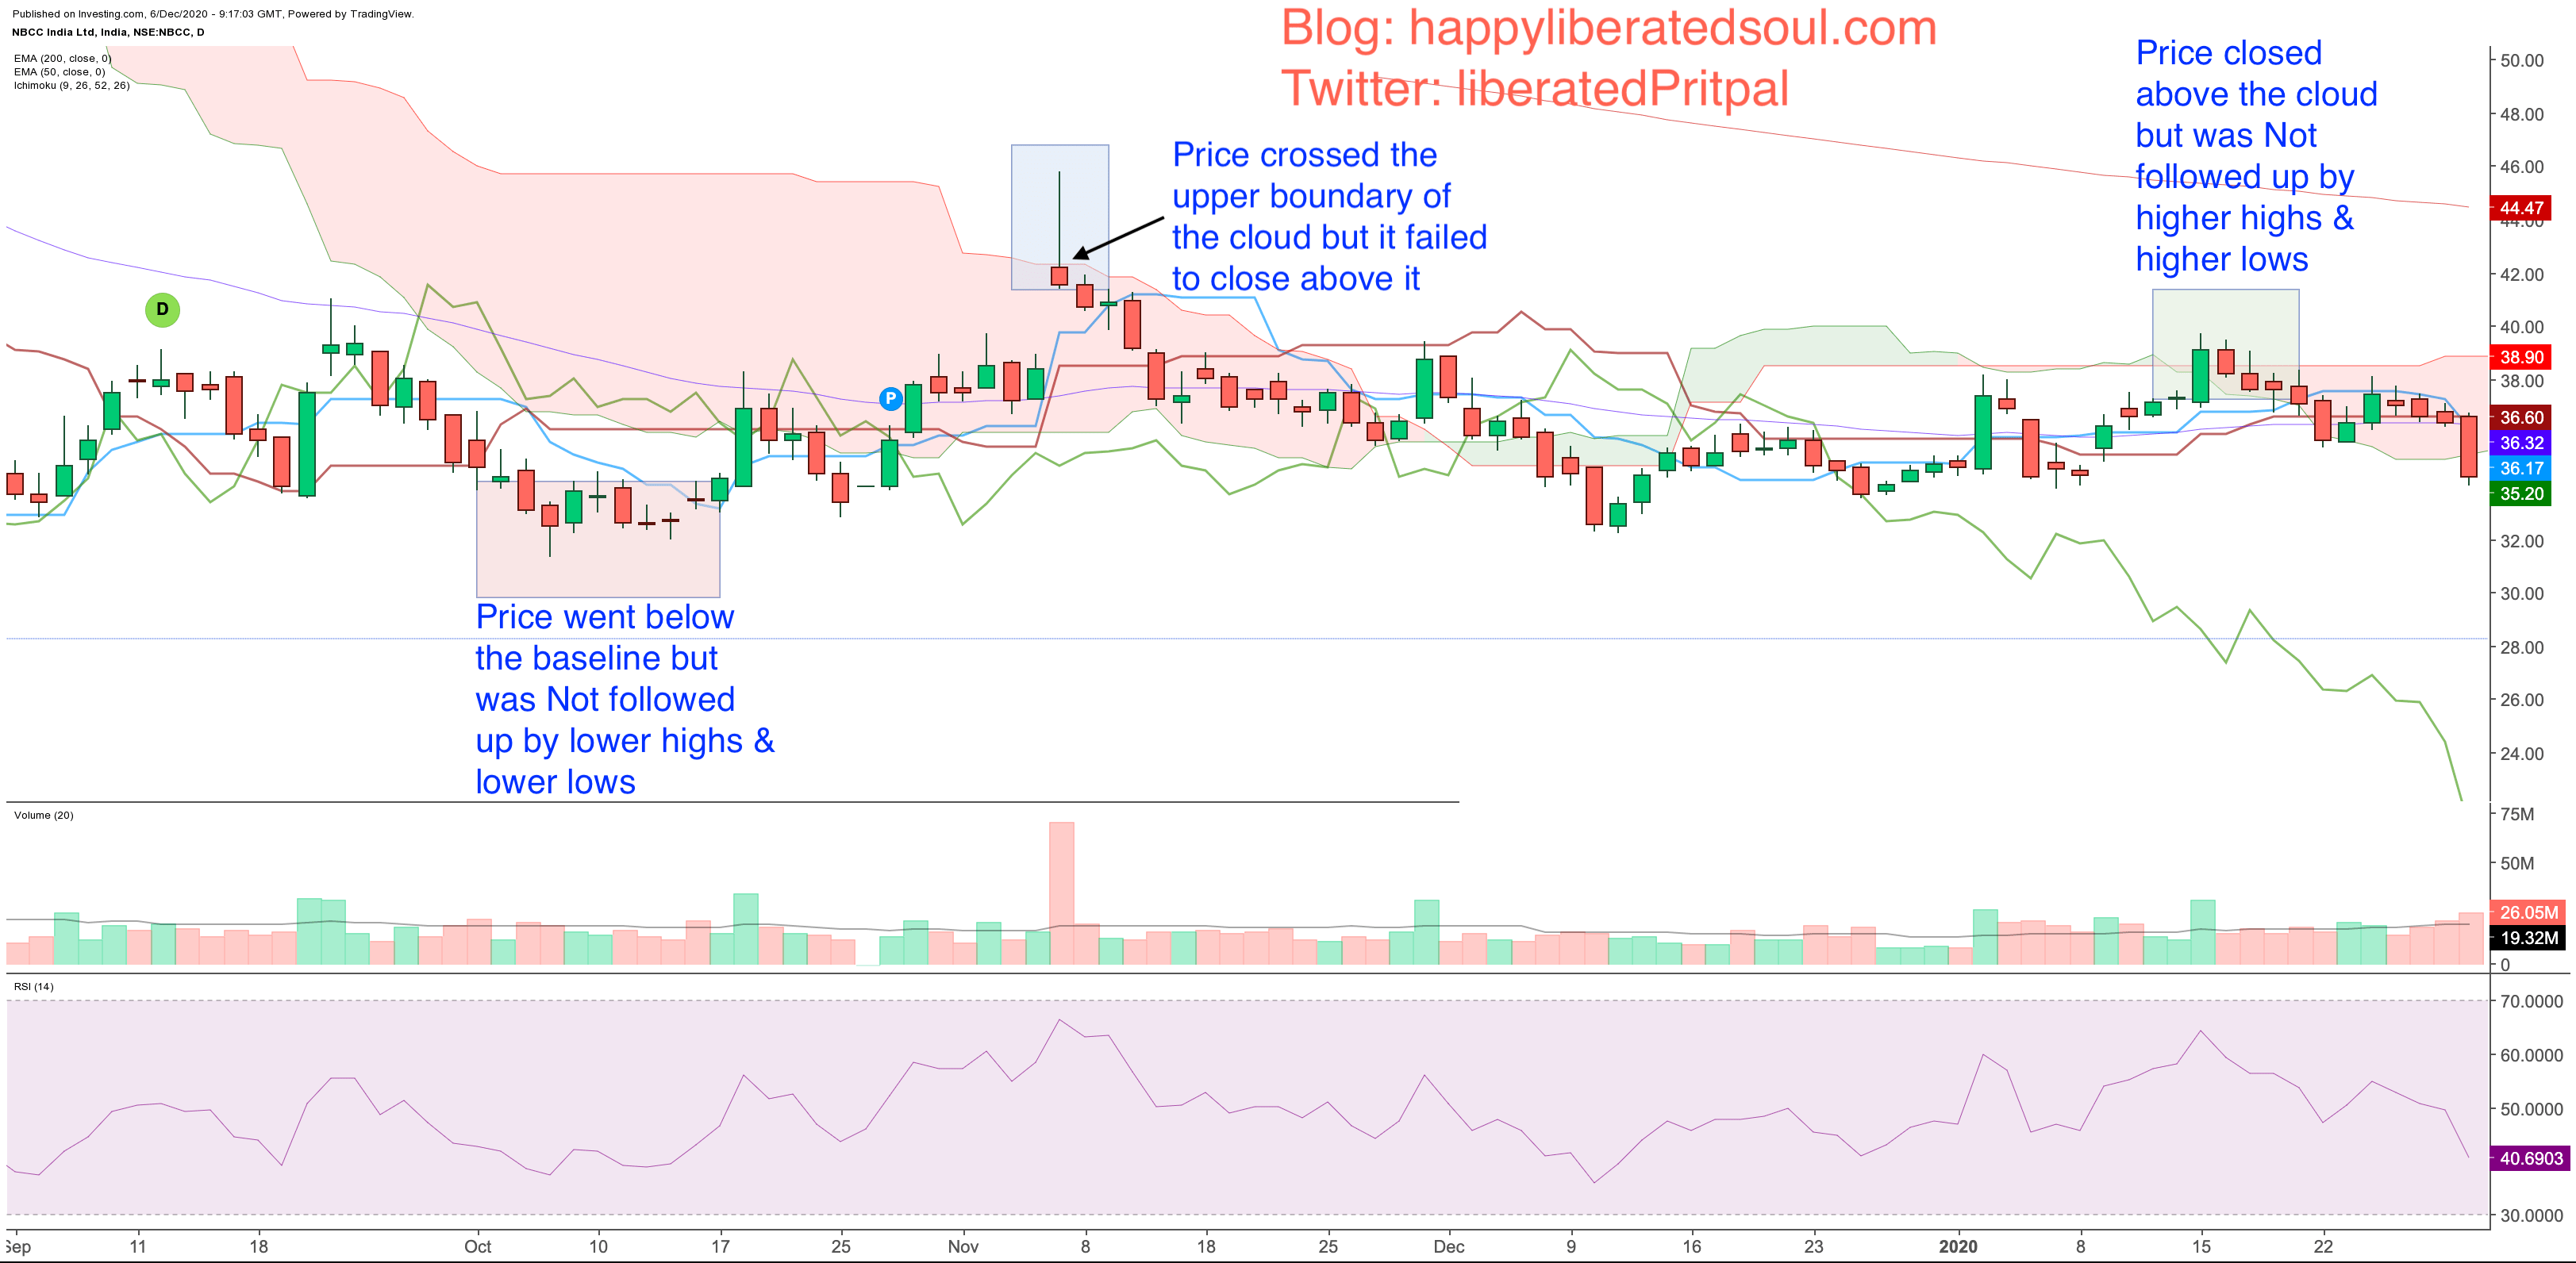 NBCC chart with Ichimoku Clouds in a range-bound mode on daily timeframe: Happy liberated soul